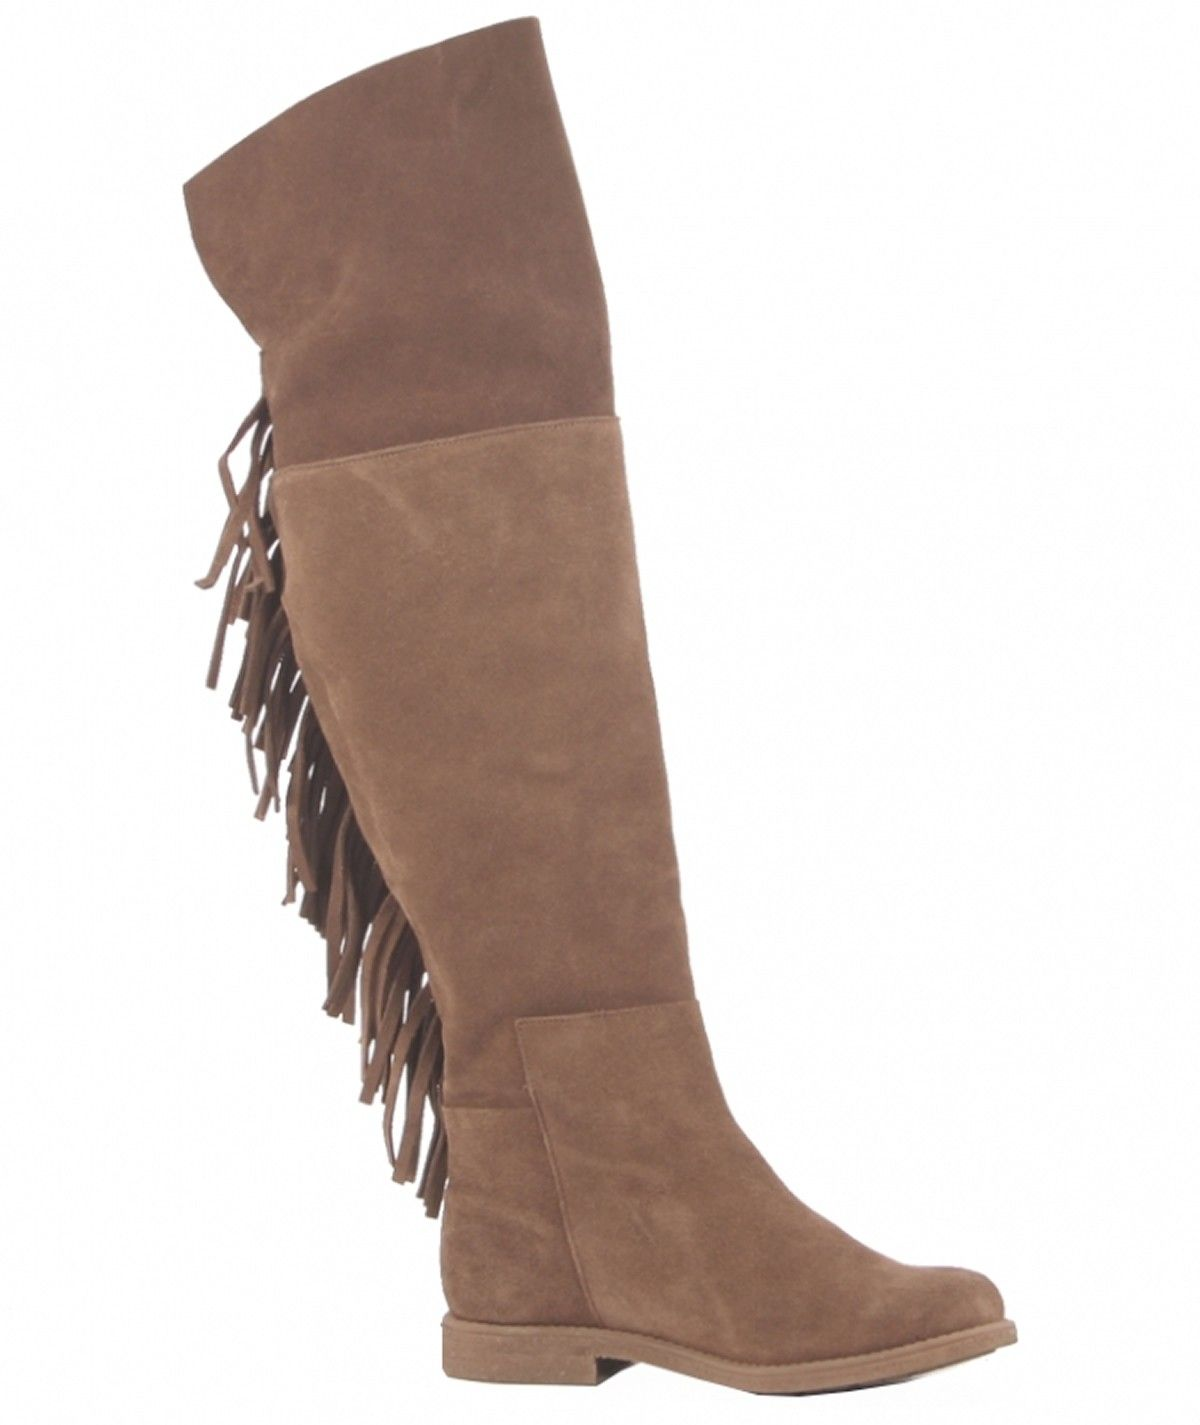 High boots with fringes